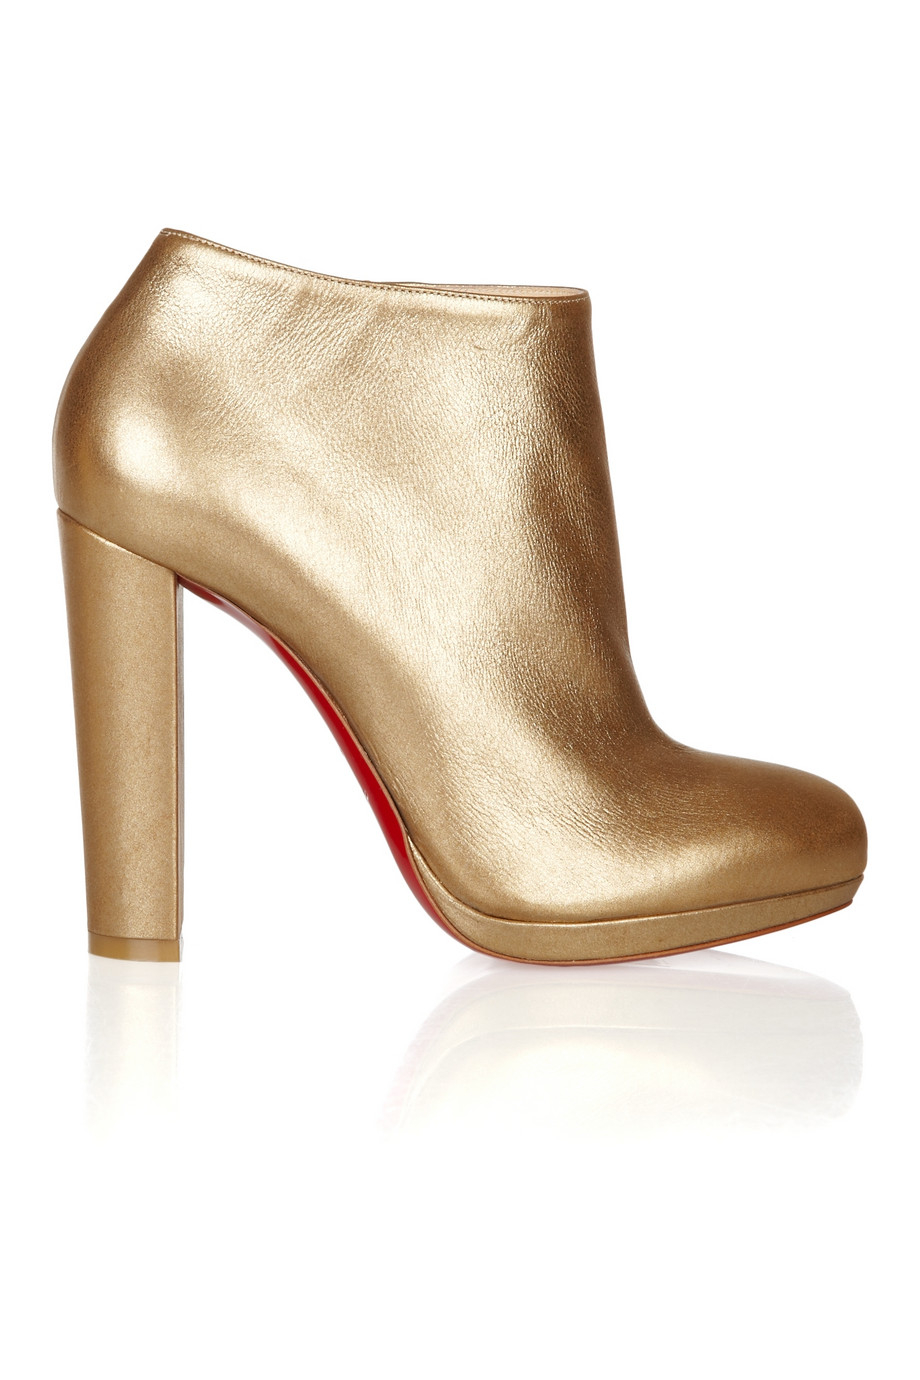 save off ce055 f600a Women's Rock & Gold 120 Metallic Leather Ankle Boots